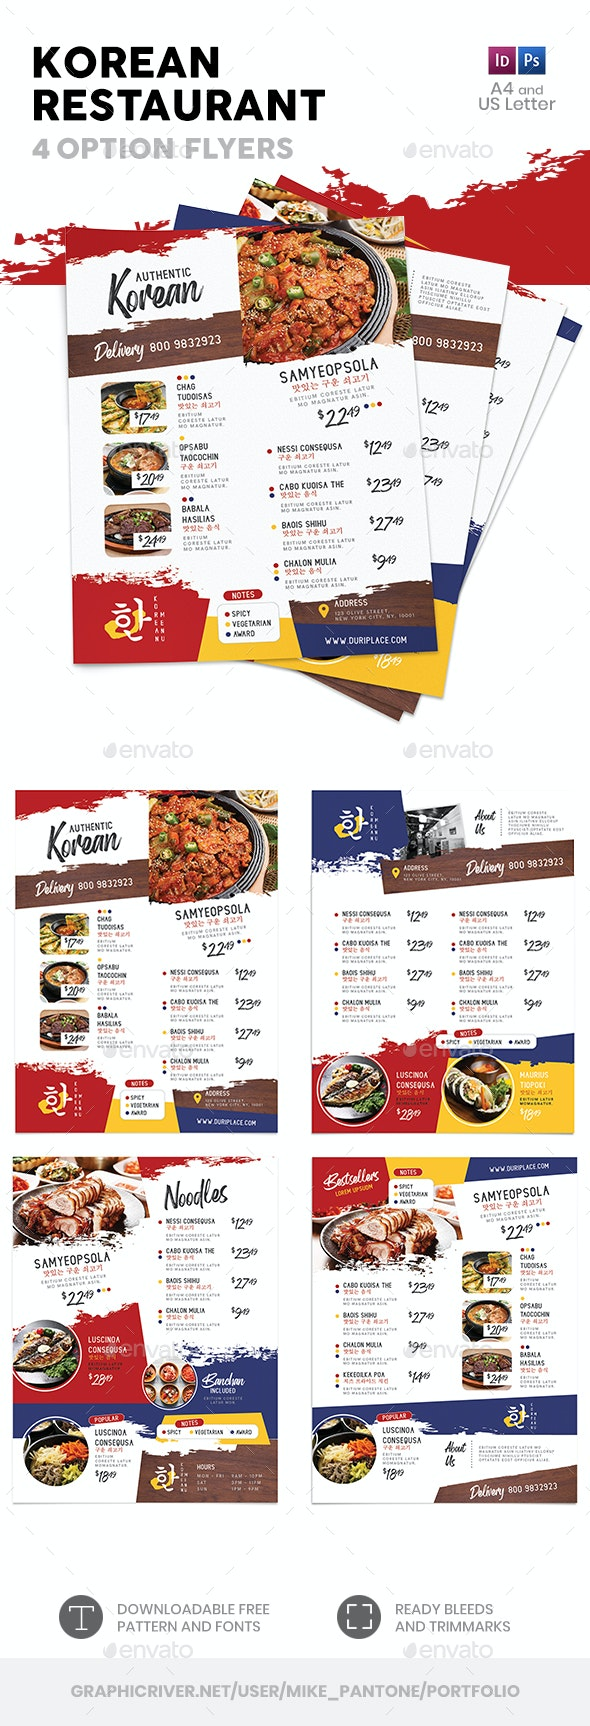 Korean Restaurant Menu Flyers 3 – 4 Options - Food Menus Print Templates